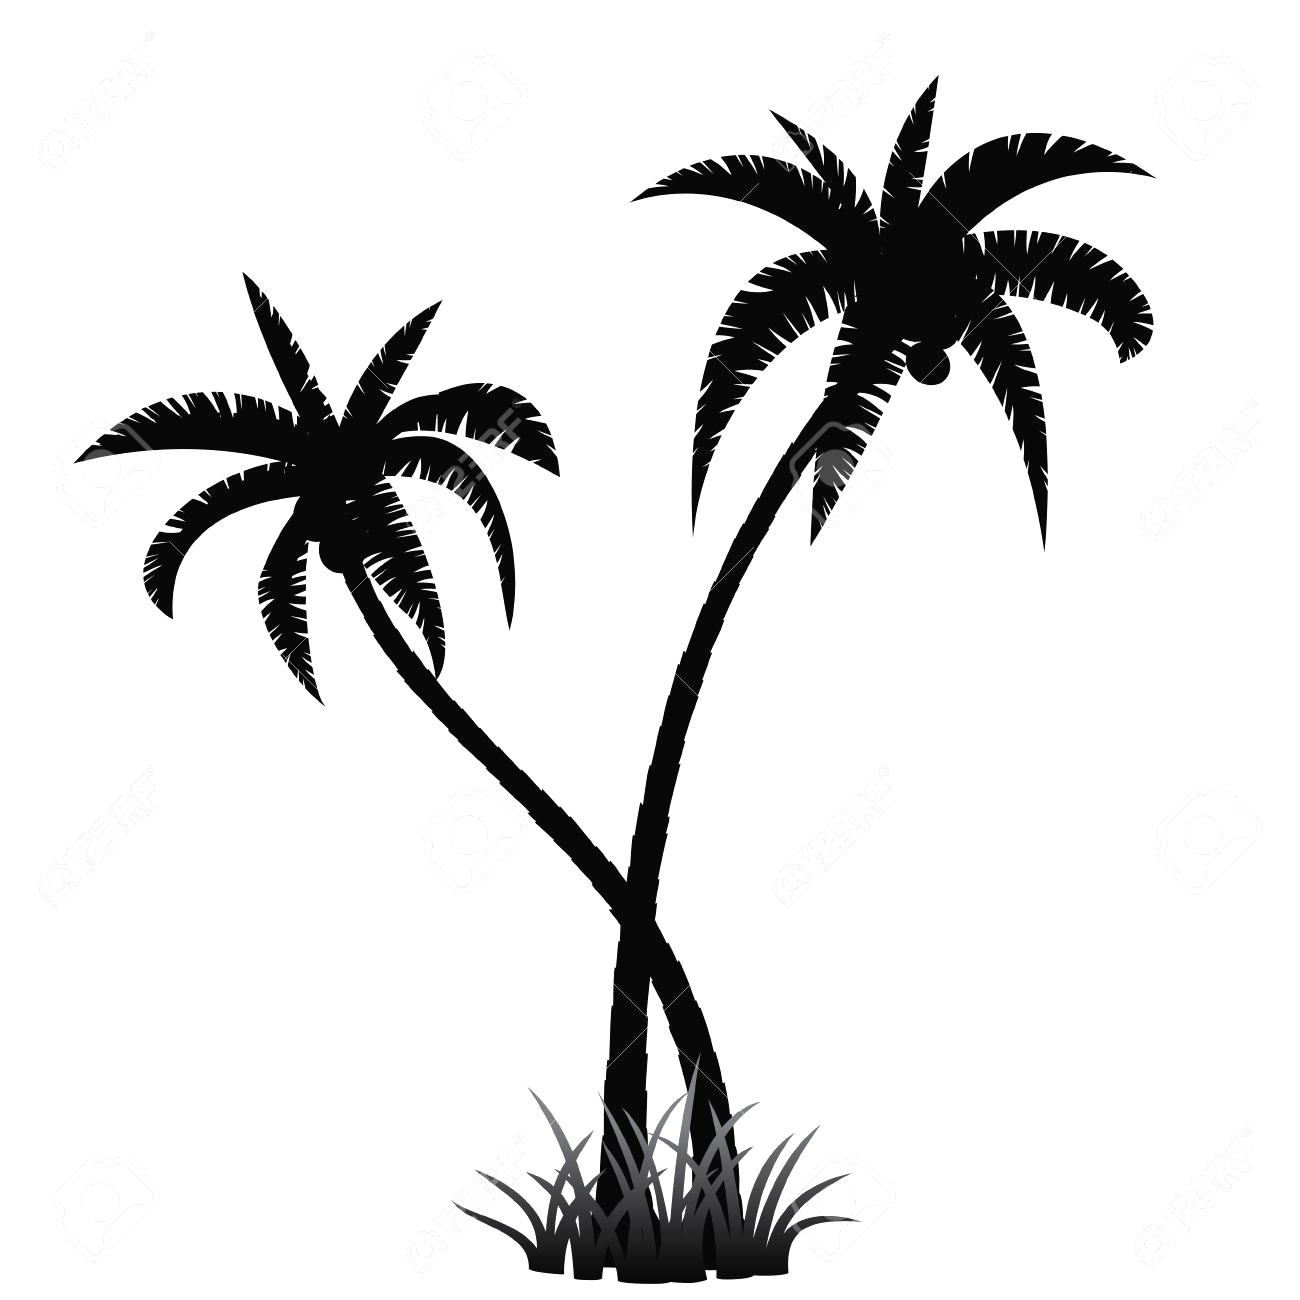 1300x1300 How To Draw A Palm Or Coconut Tree In Easy Steps For Children Avec